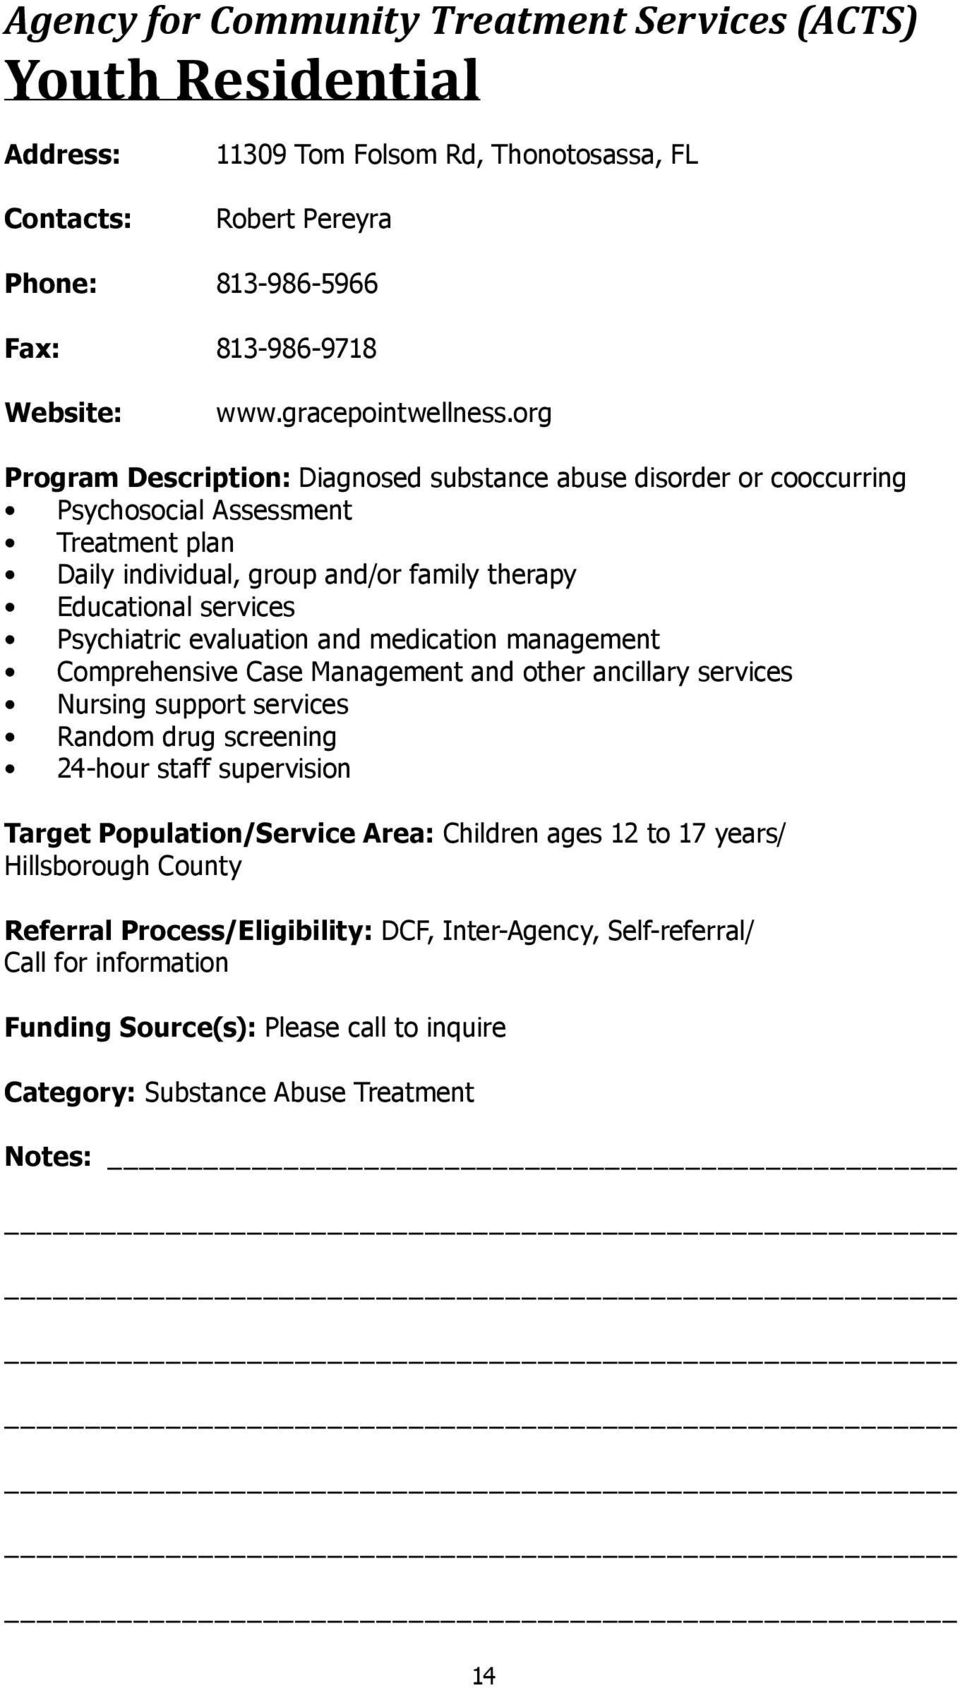 evaluation and medication management Comprehensive Case Management and other ancillary services Nursing support services Random drug screening 24-hour staff supervision Target Population/Service